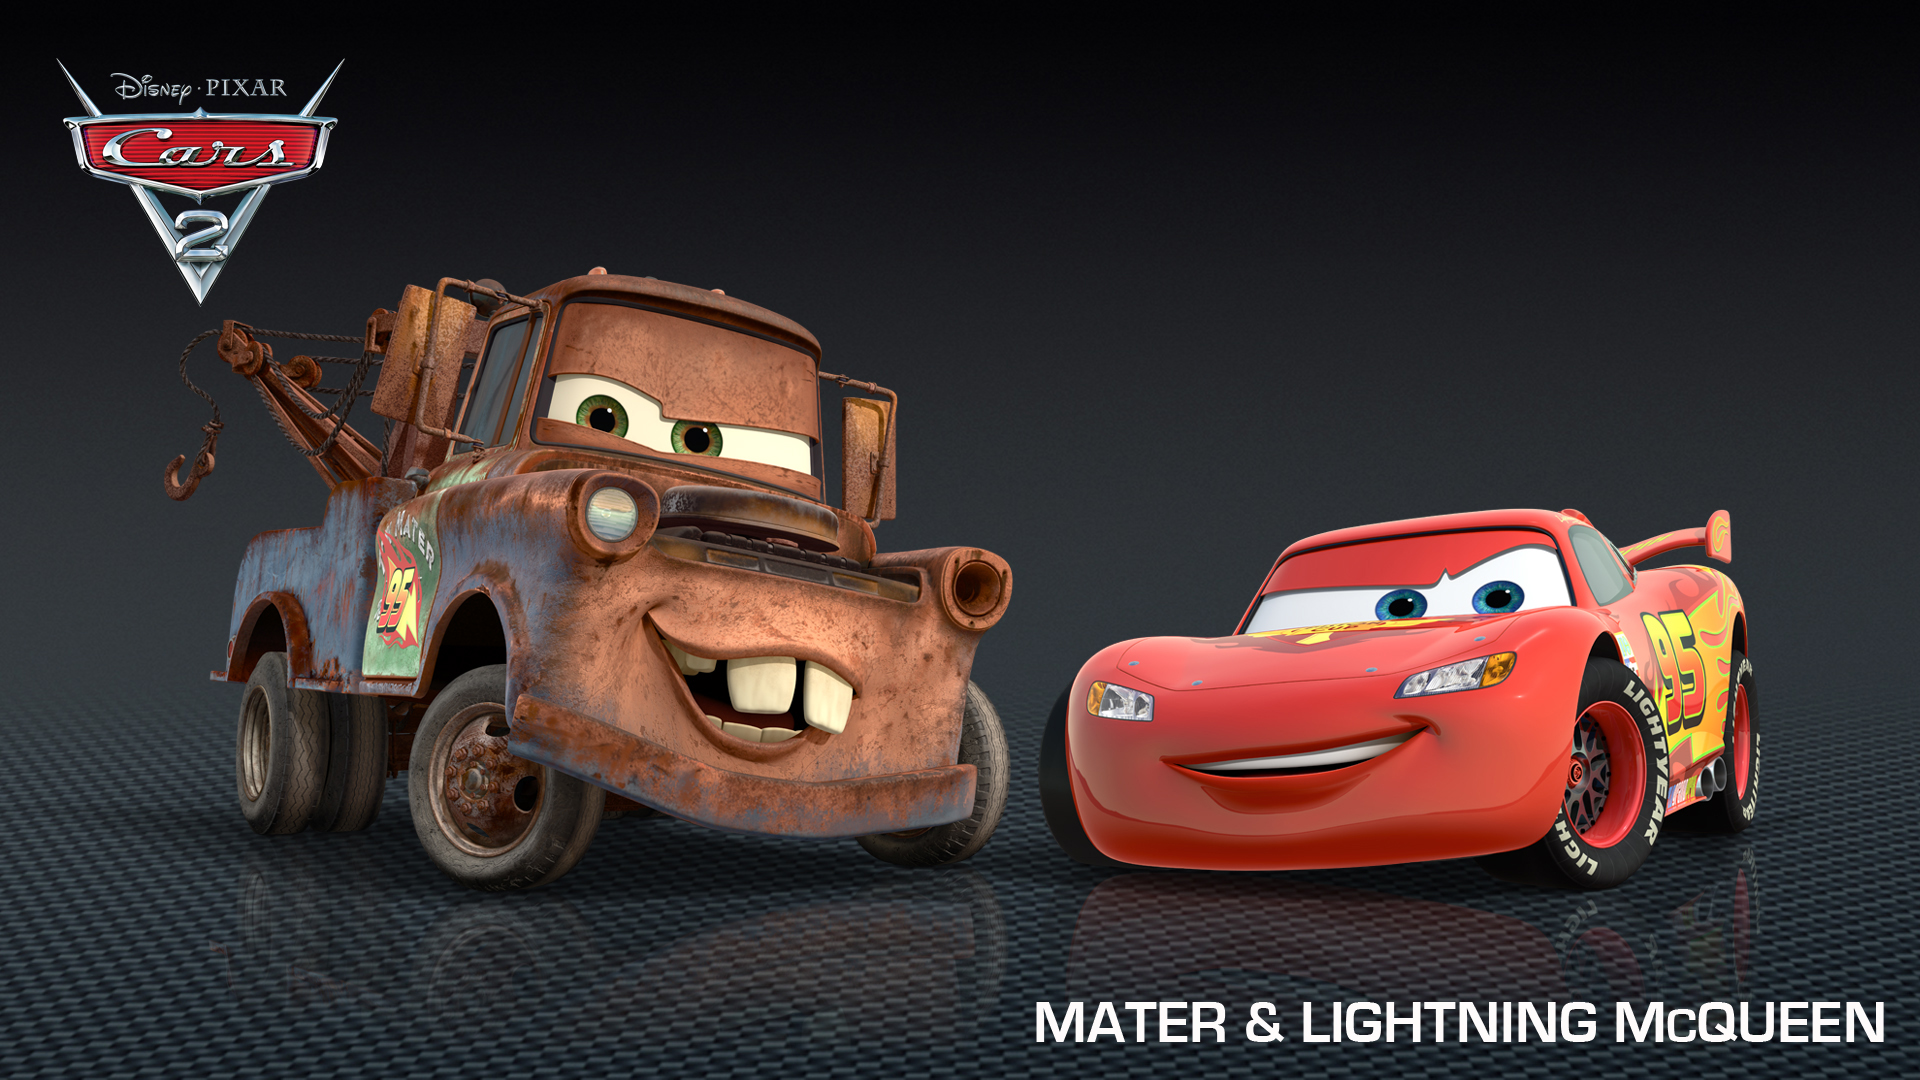 image cars 2 movie photo 14 550x309jpg pixar wiki fandom powered by wikia - Cars The Movie 2 Characters